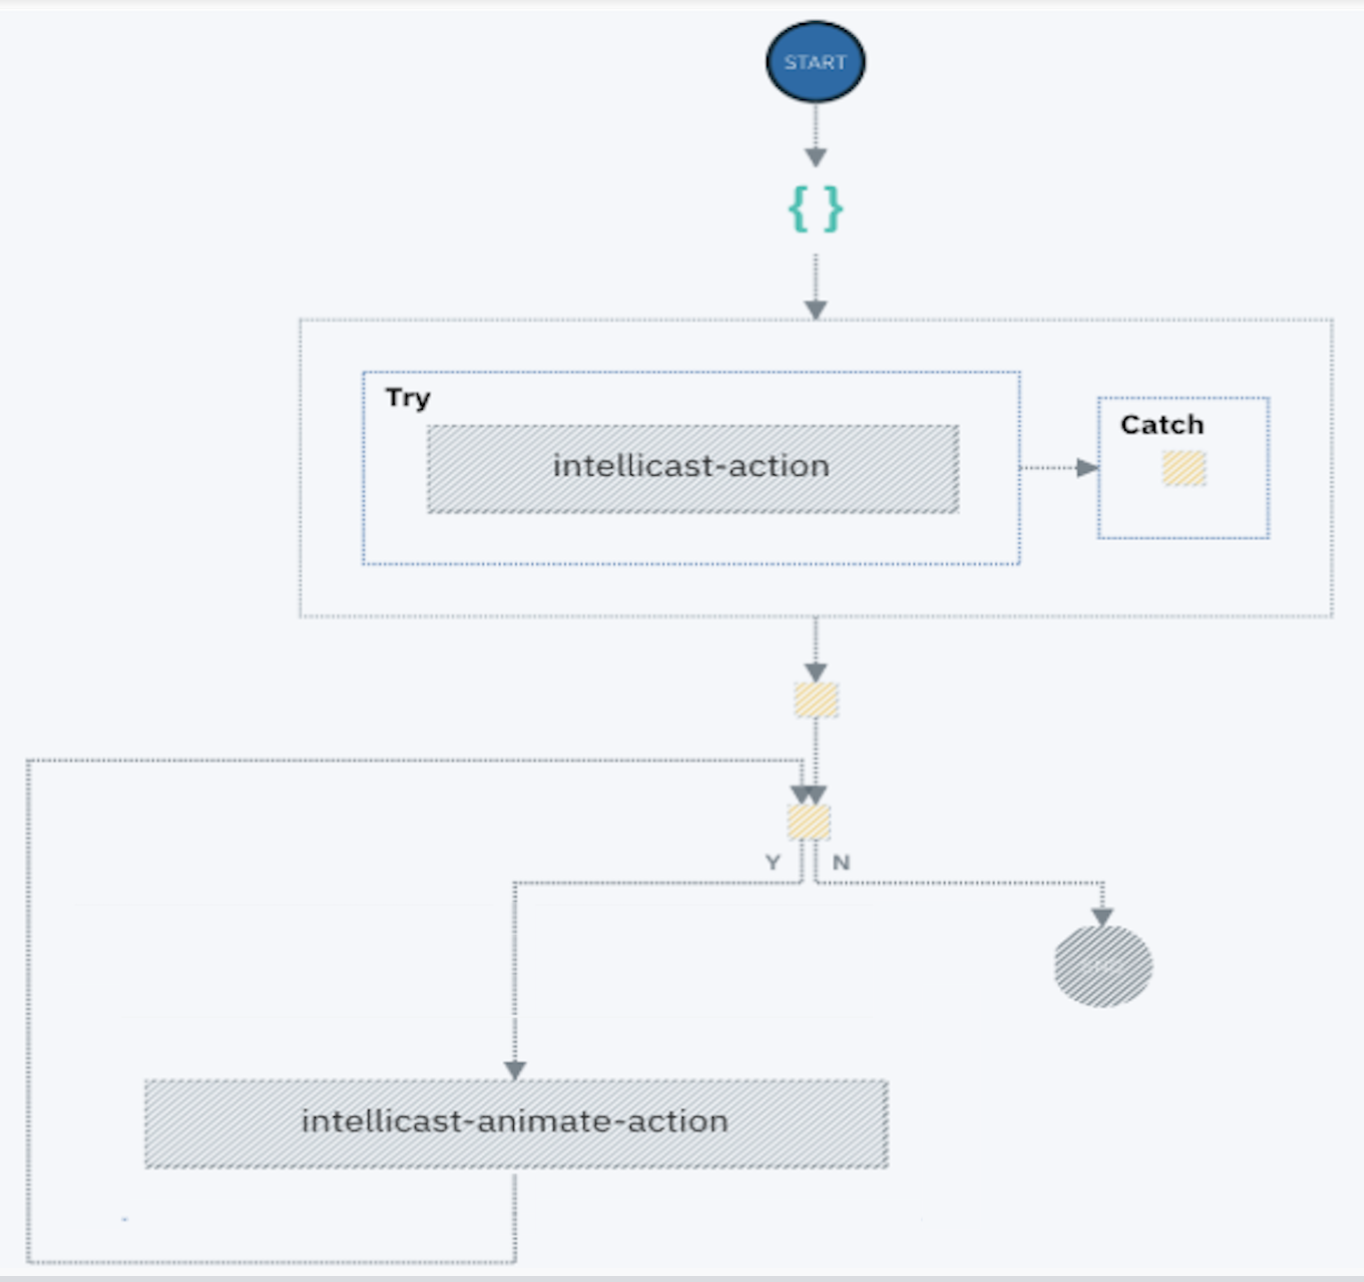 serverless intellicast architecture flow diagram